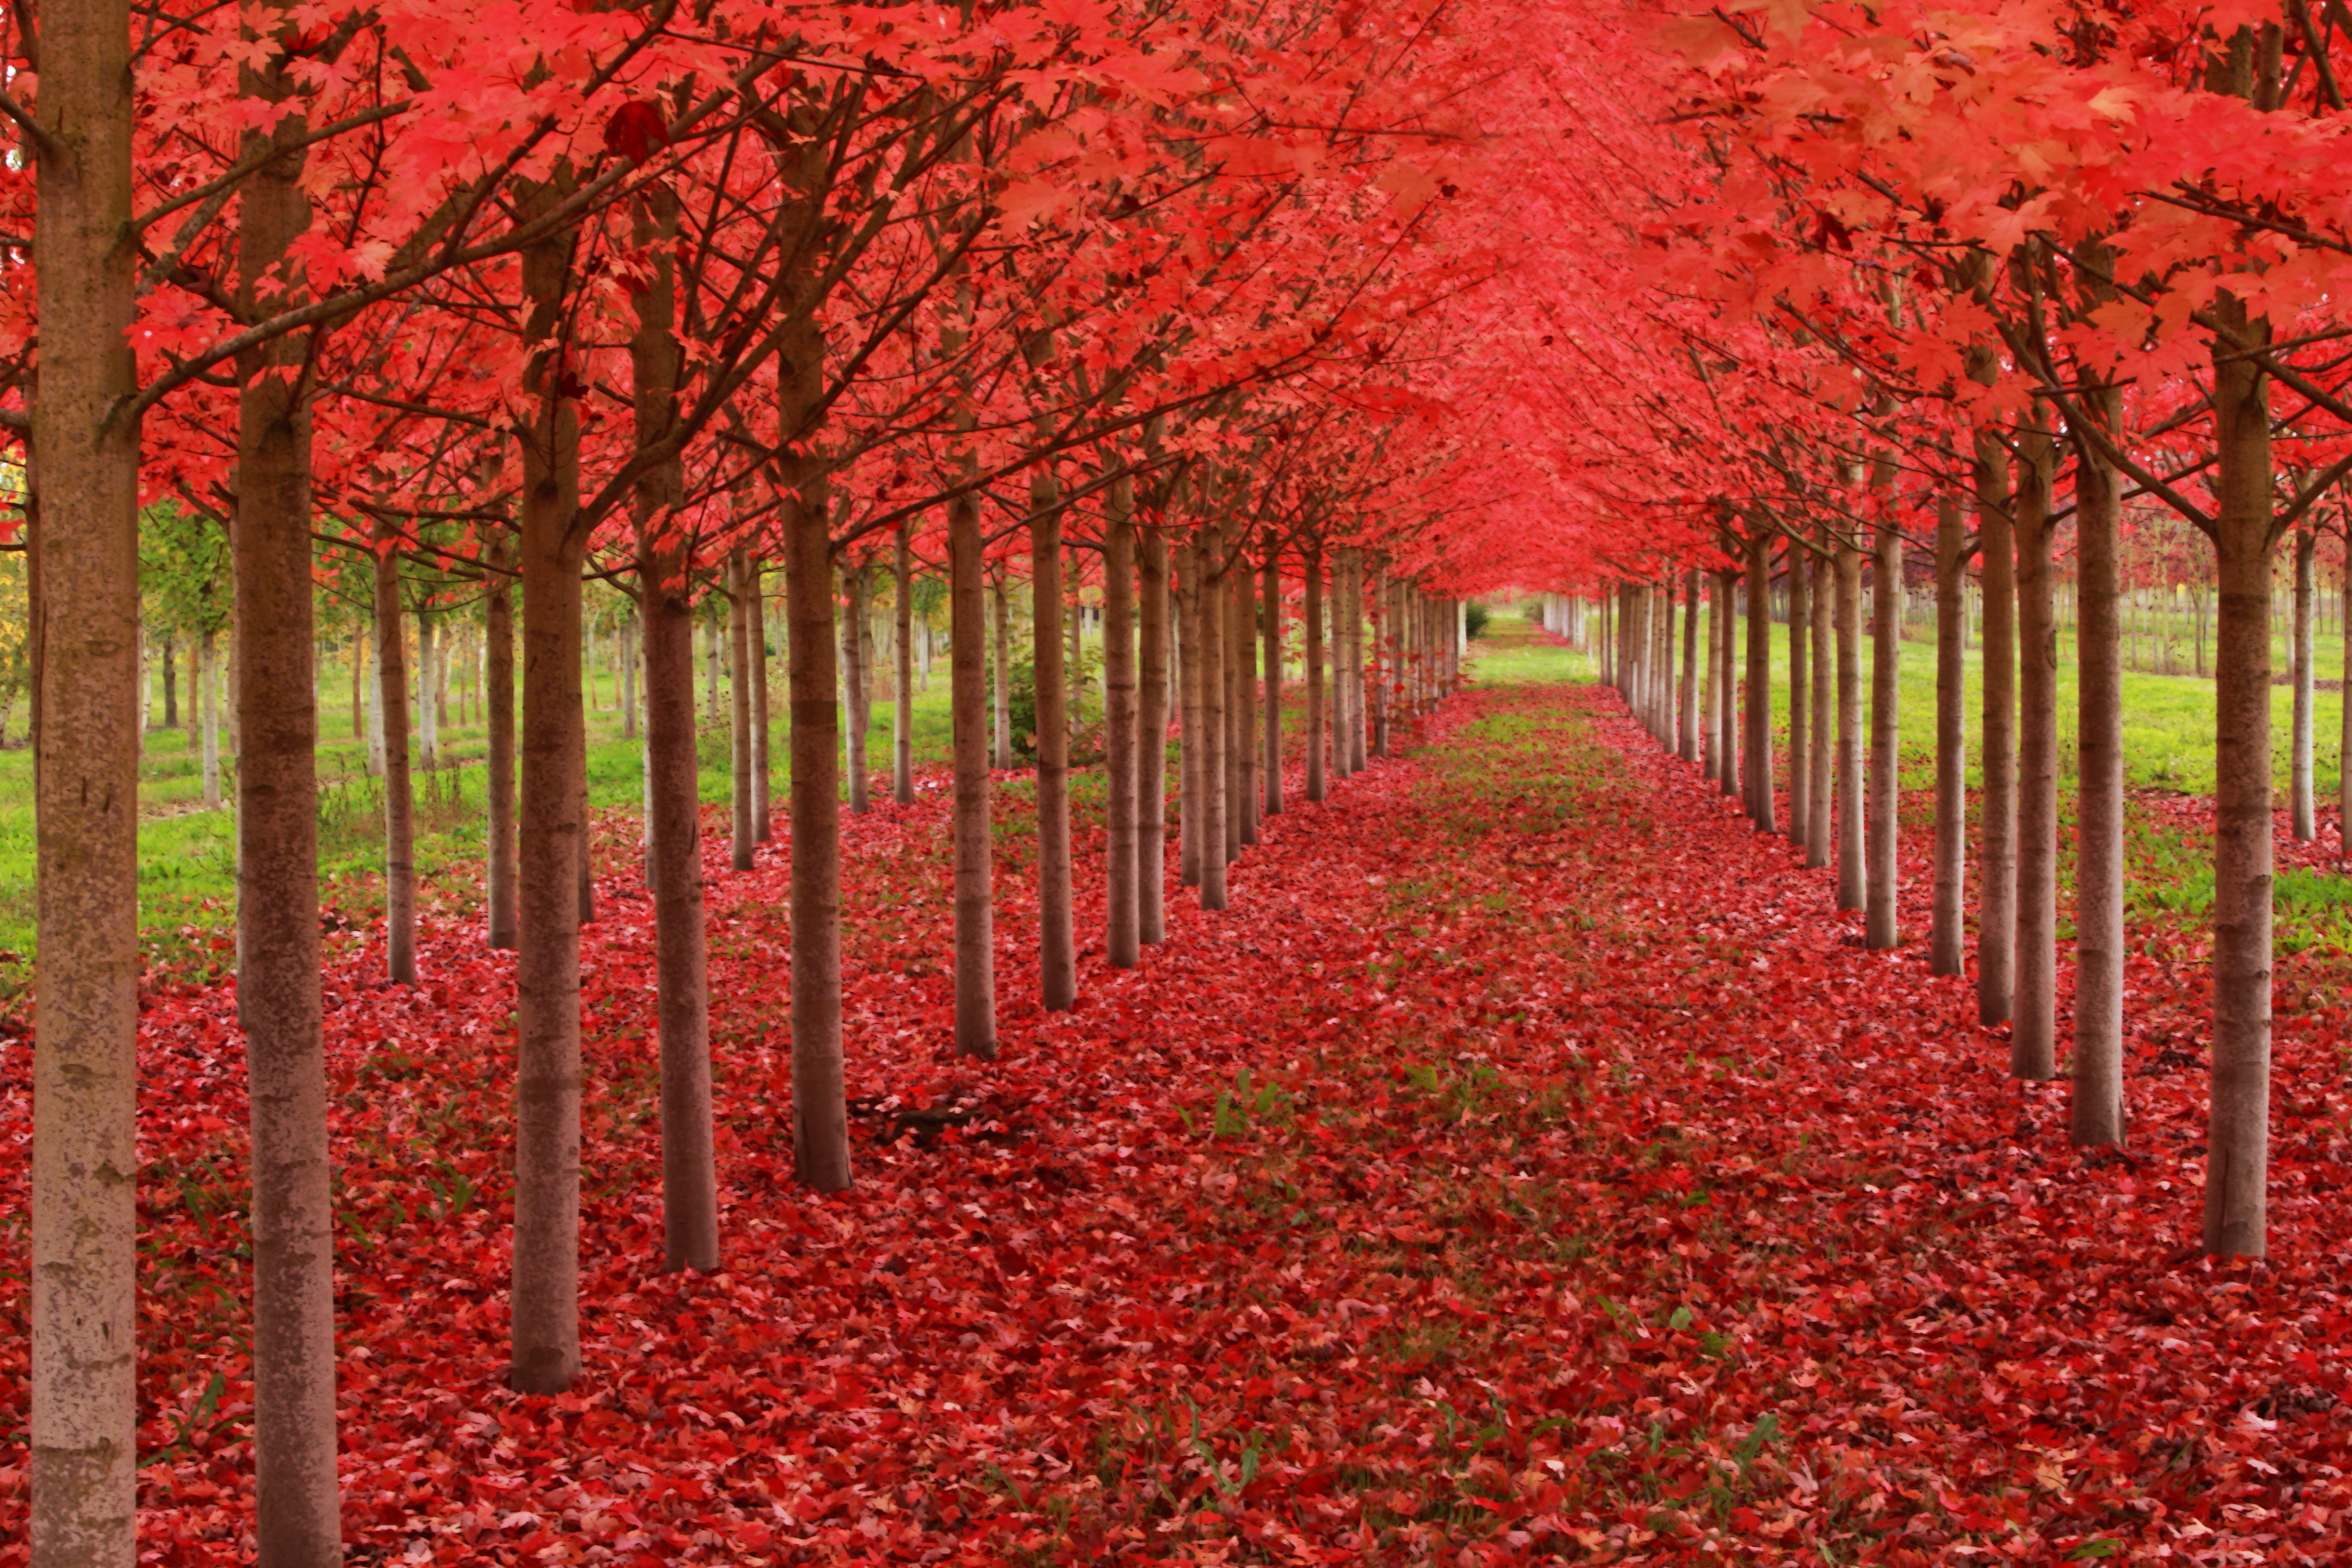 Red leave trees with the title Under a Blood Red Sky